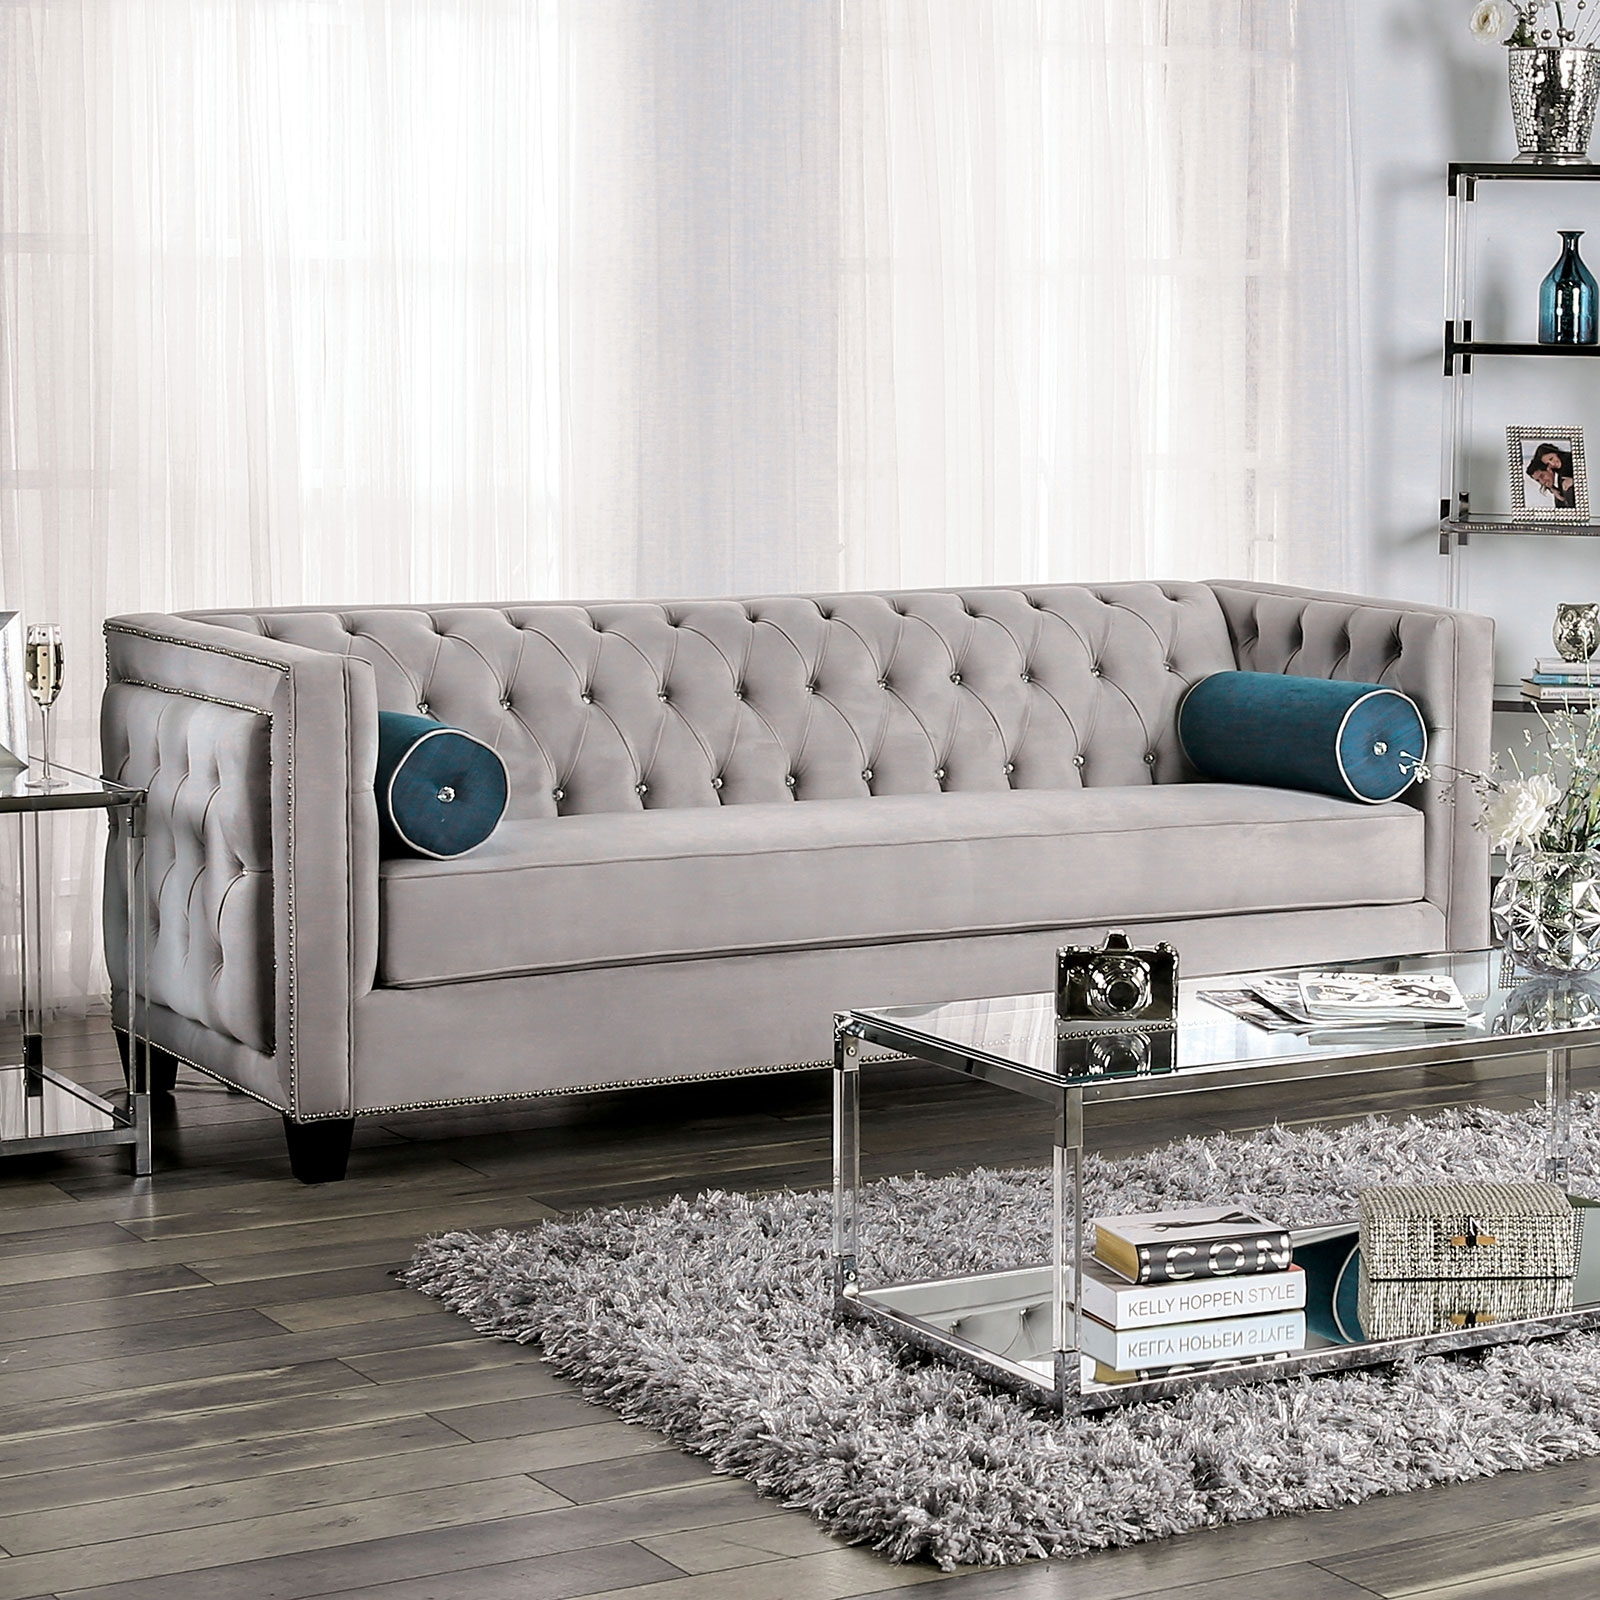 Terrific Silvan Chic Warm Grey Velvet Tufted Sofa With Single Bench Seat Gamerscity Chair Design For Home Gamerscityorg